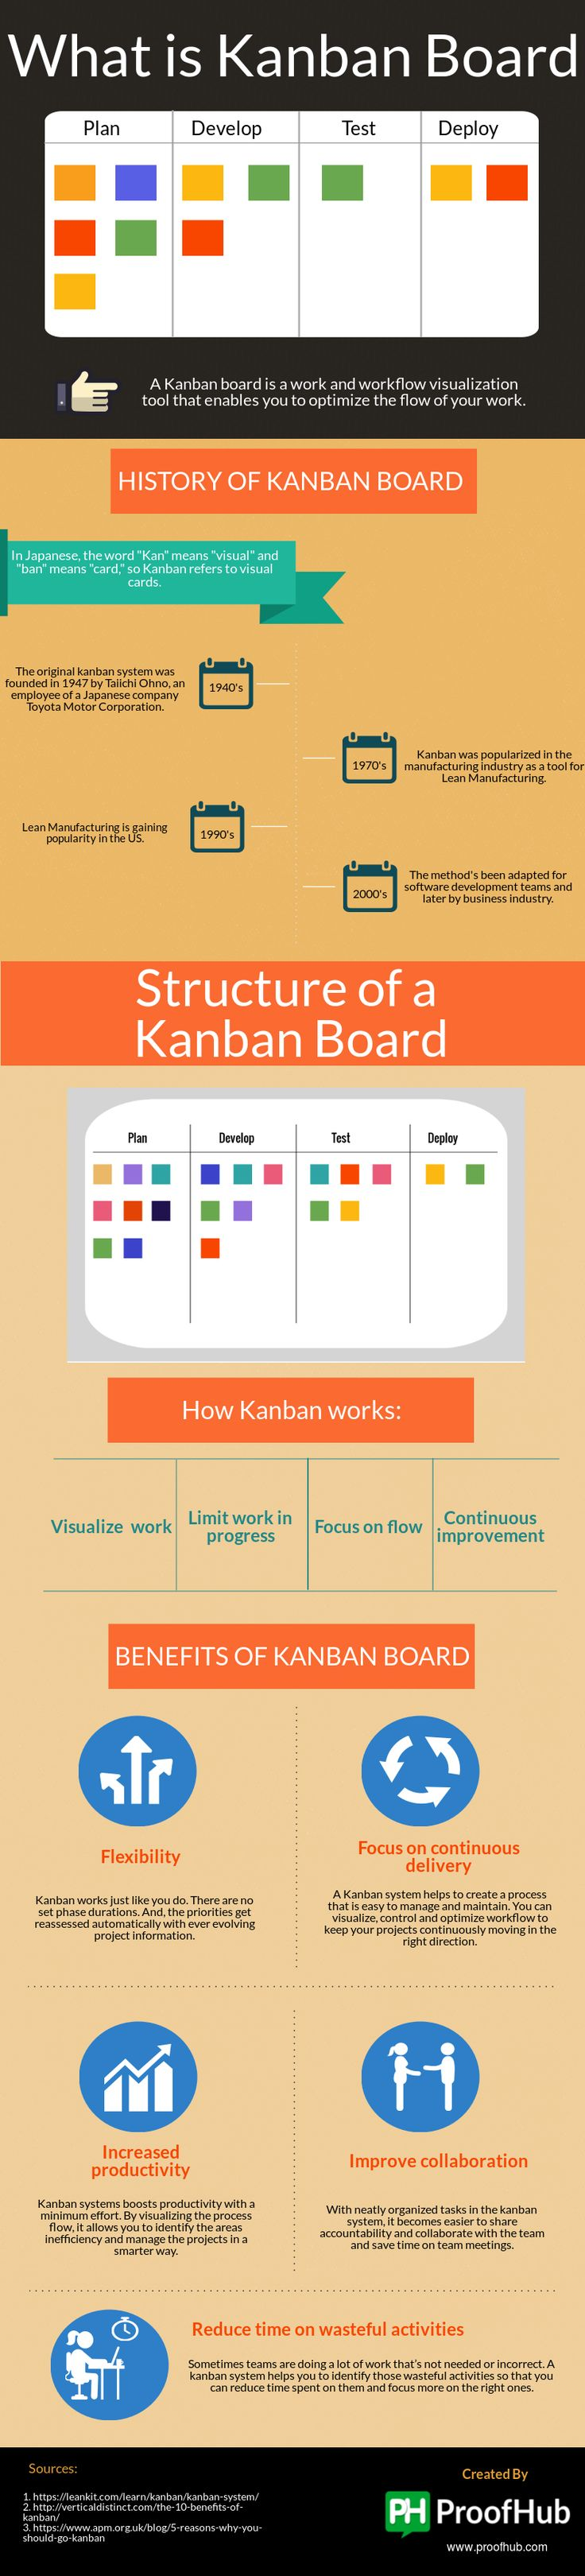 Kanban system is one of the simplest ways to optimize workflow. People think that a Kanban board is nothing more than just boards and post-it notes. But, in reality it's lot more than that. Take a look at this post and get to know all about Kanban boards, and why, in recent past, project managers from all over the world have been going gaga over using them.